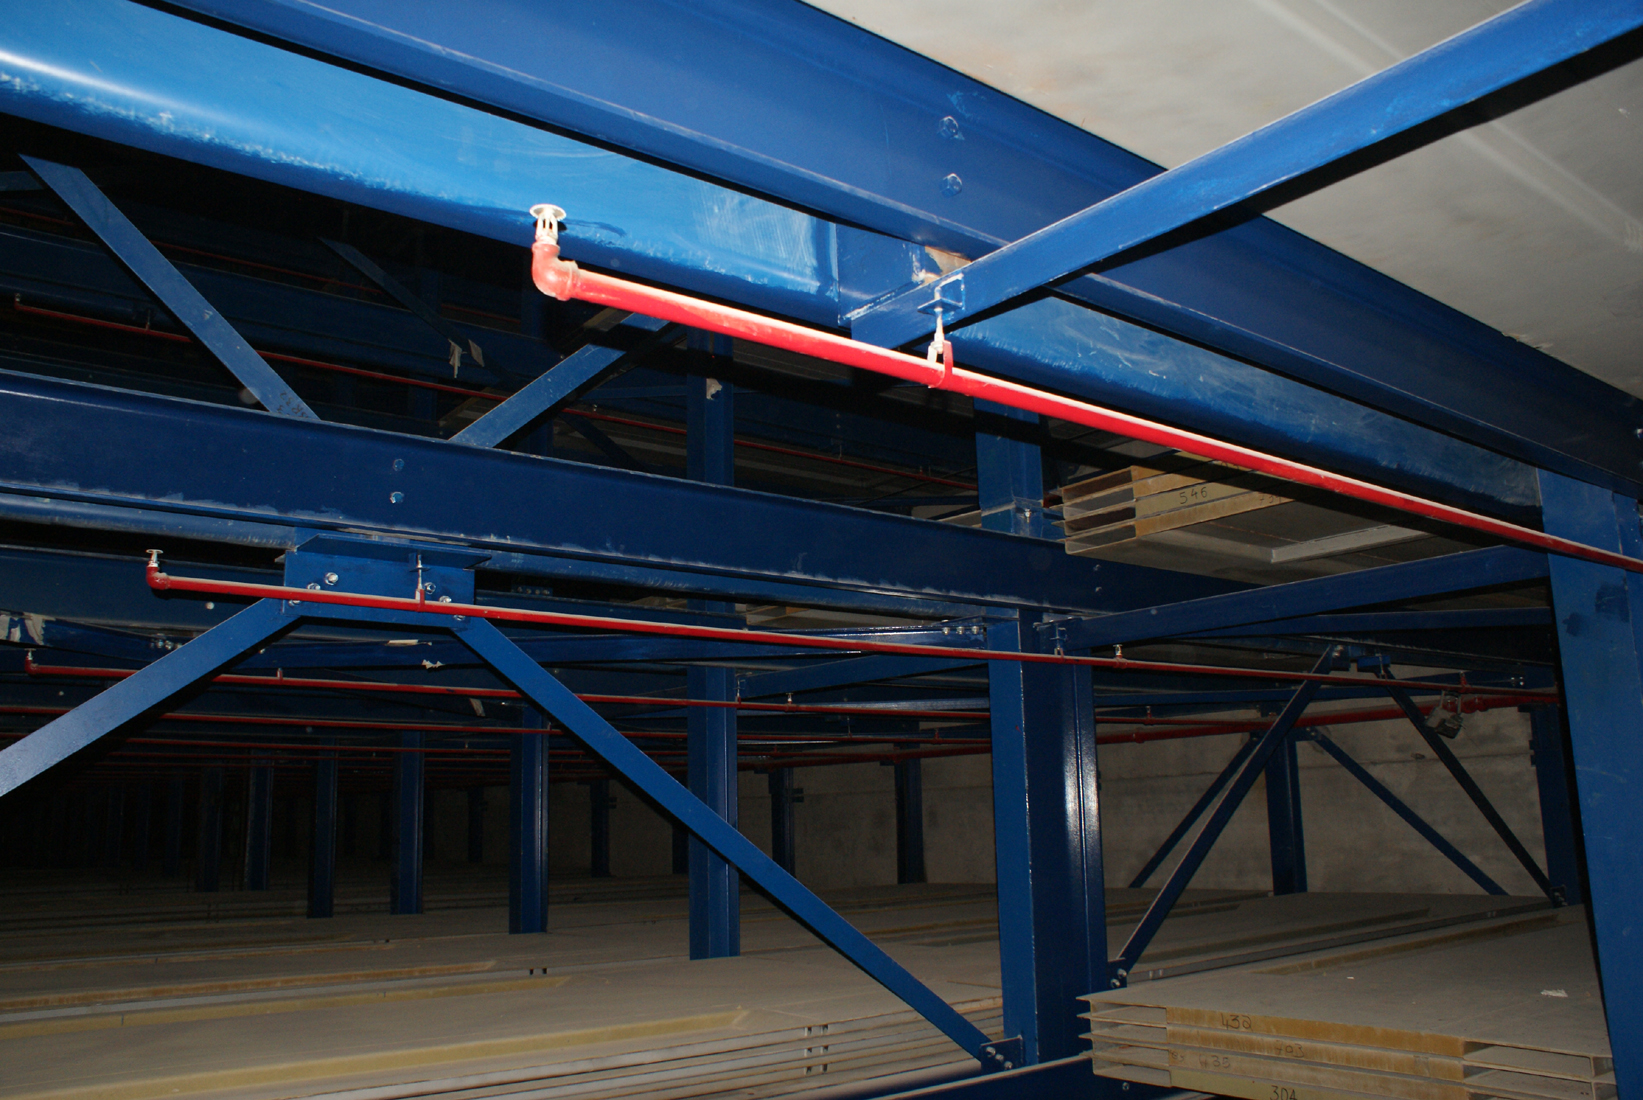 Robotic Parking Systems Comply With The 2011 Edition Nfpa